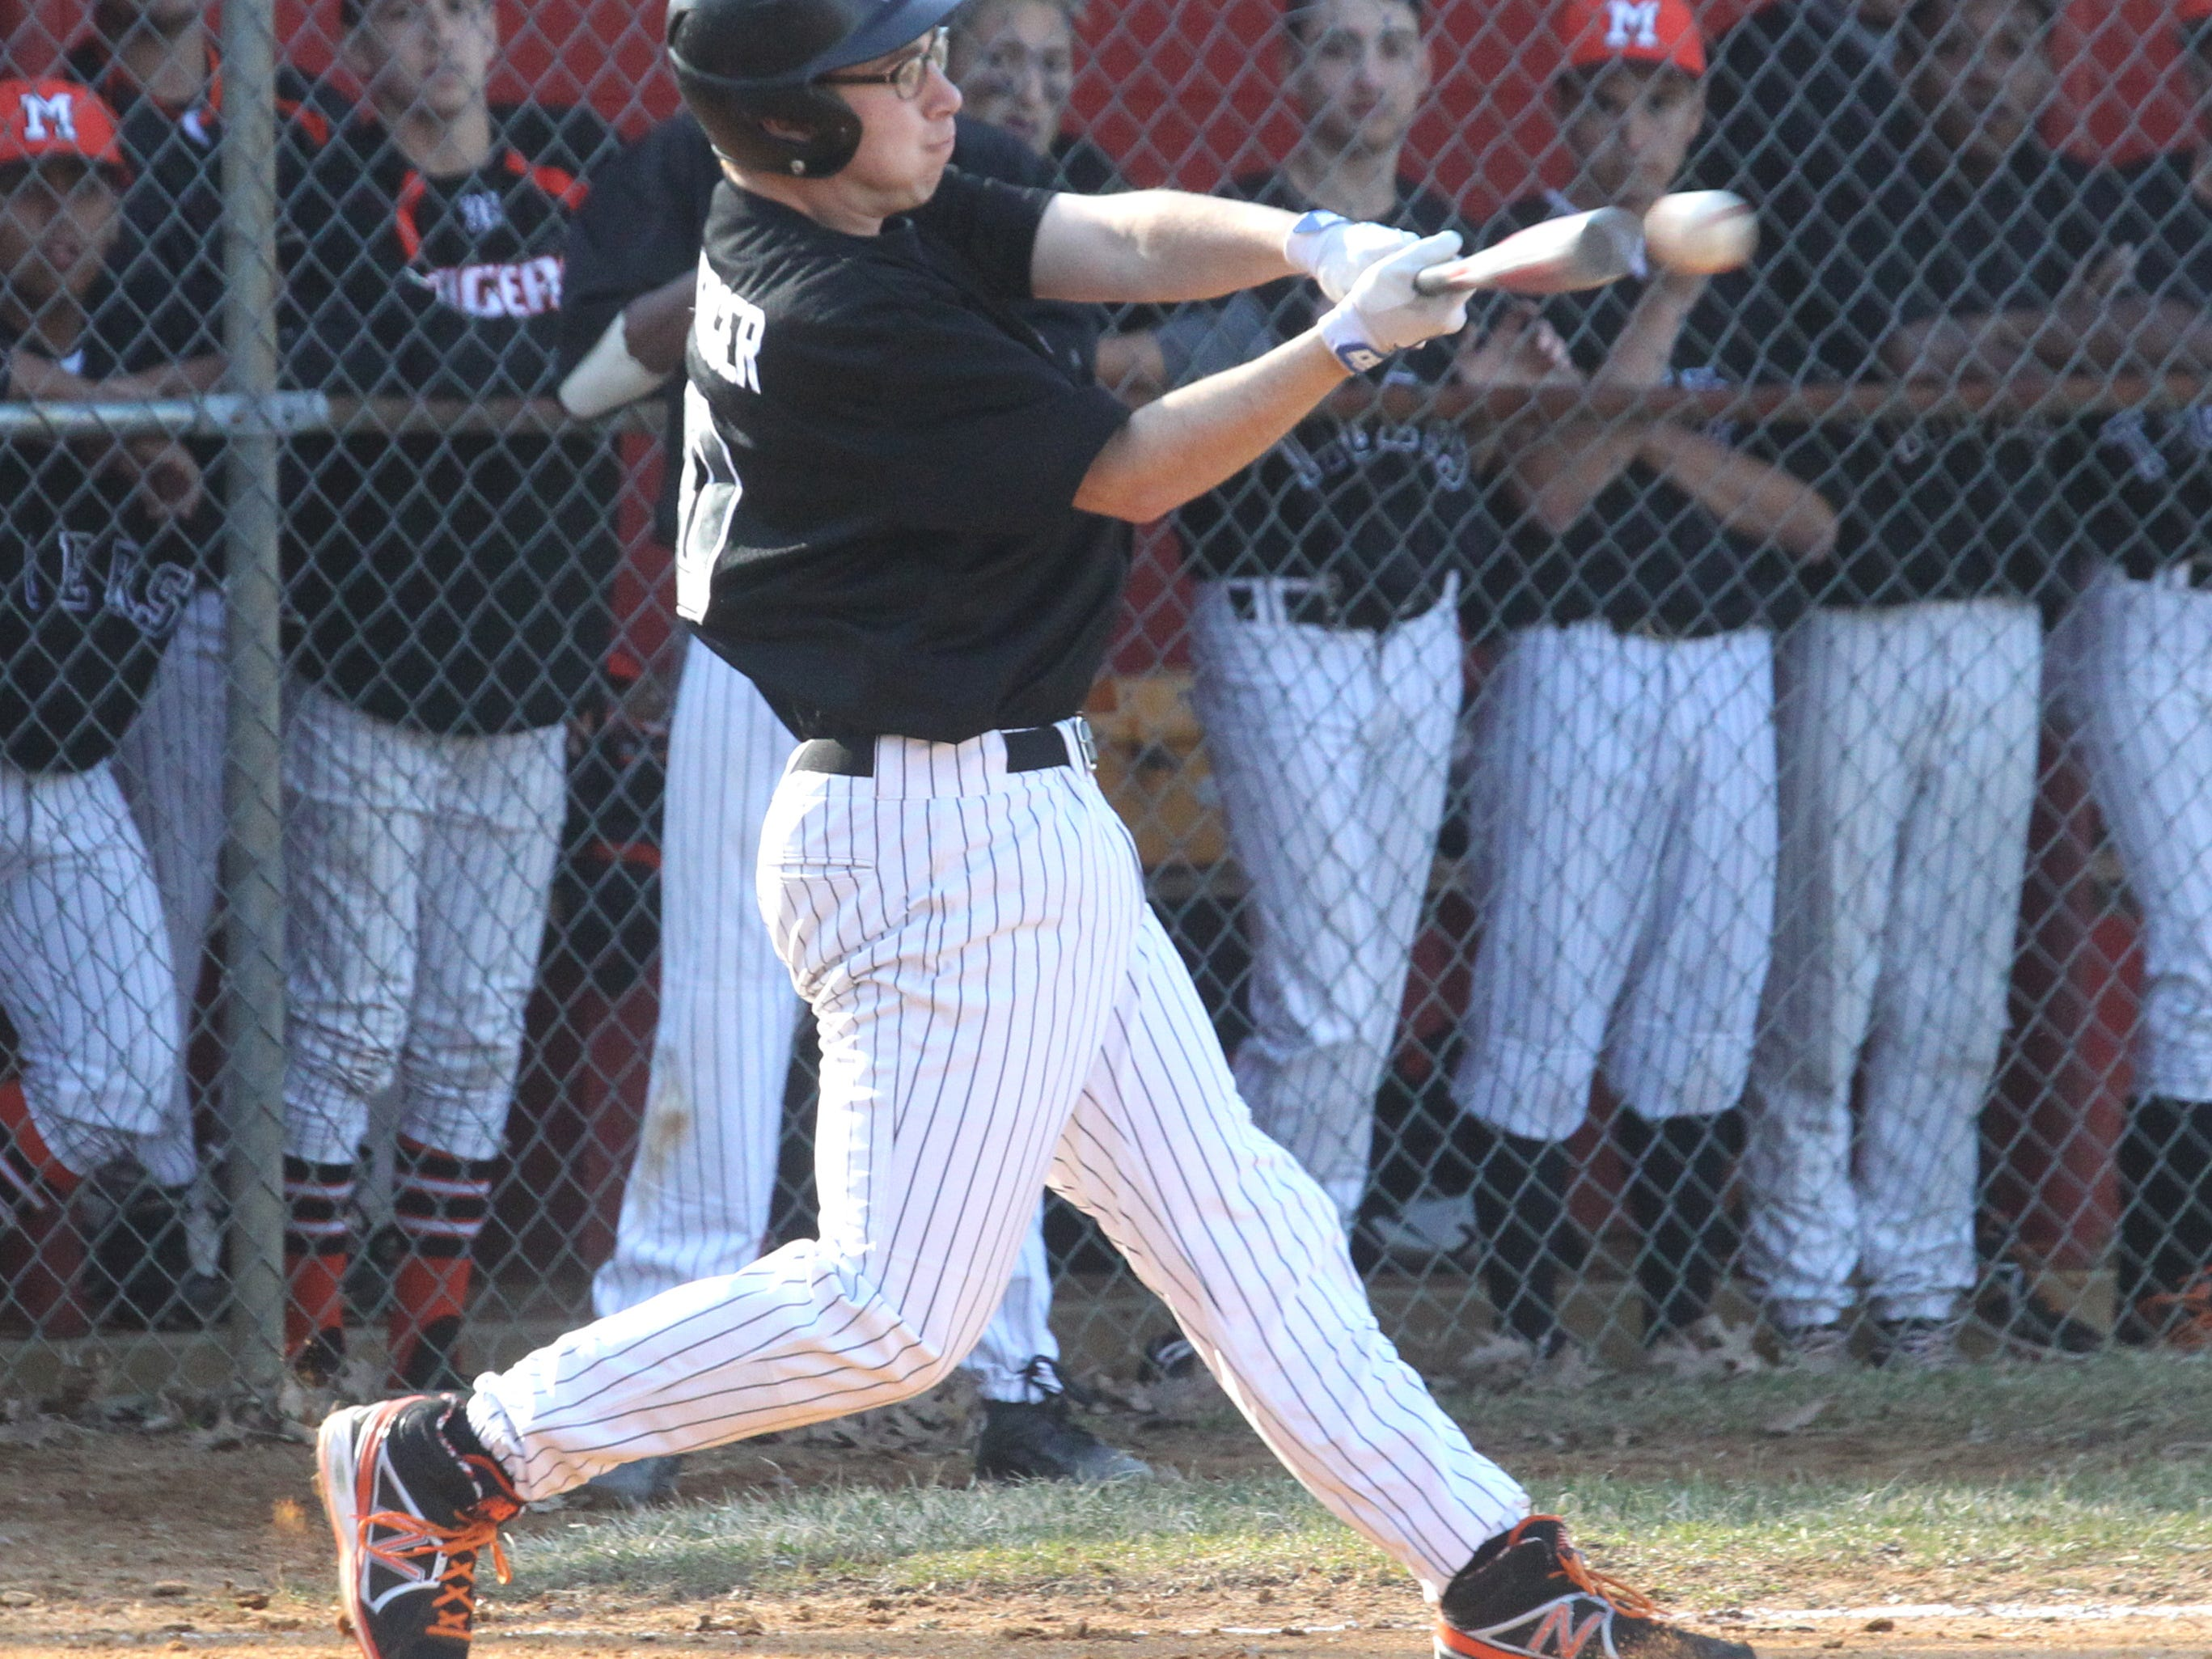 Mamaroneck's Ben Steinberger drives in two runs at North Rockland Apr. 6, 2015. Mamaroneck won 3-2.